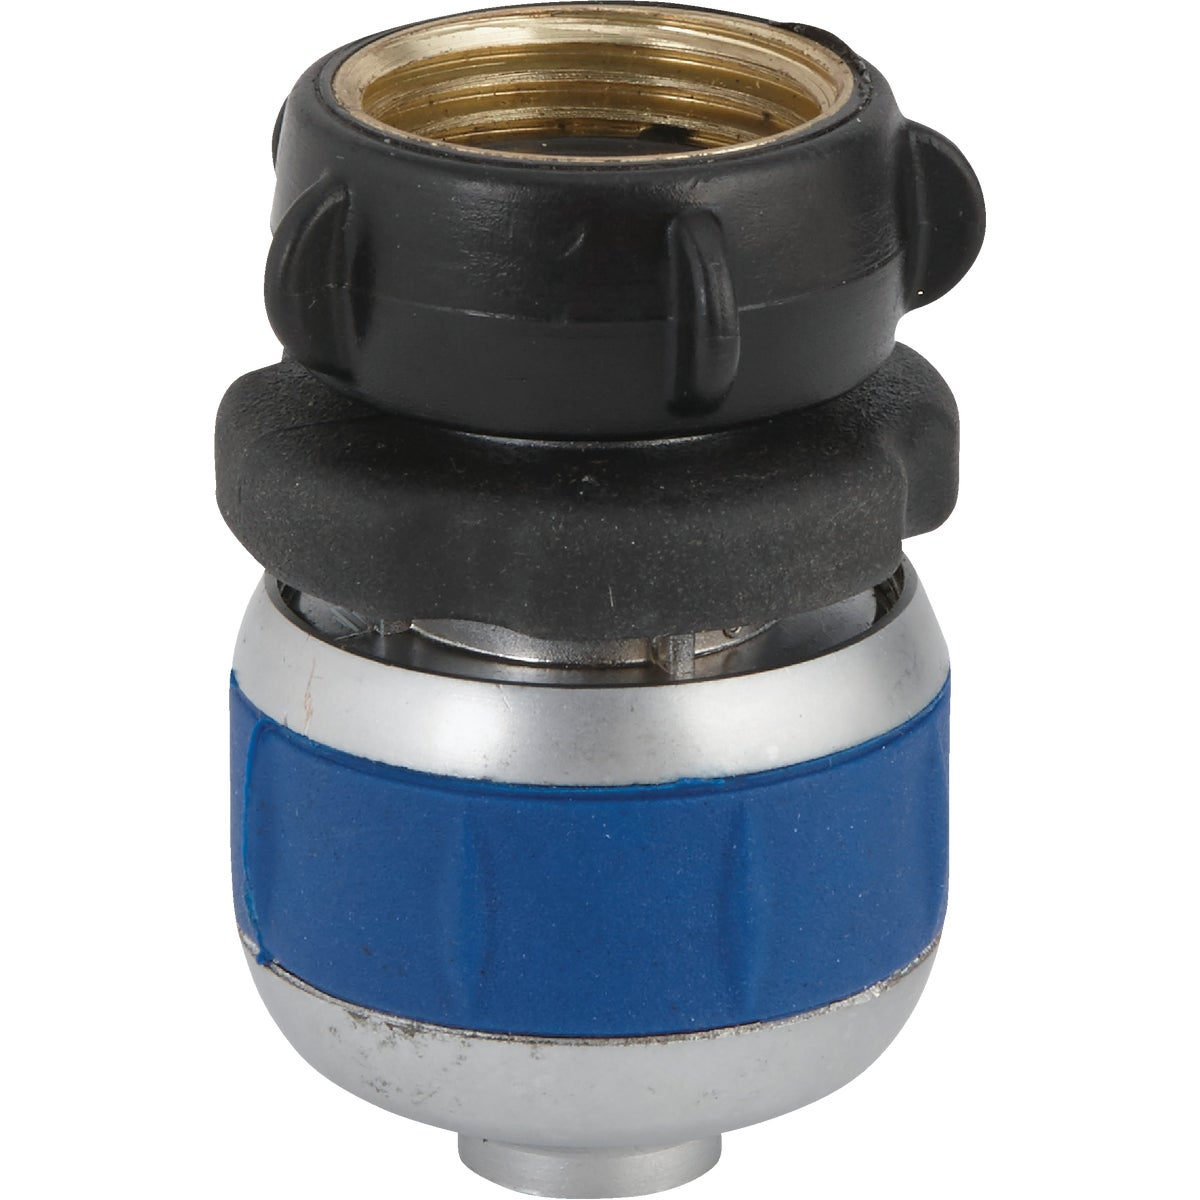 "5/8"" FEMALE HOSE END - DIB58CPF by Bosch G W Gs"